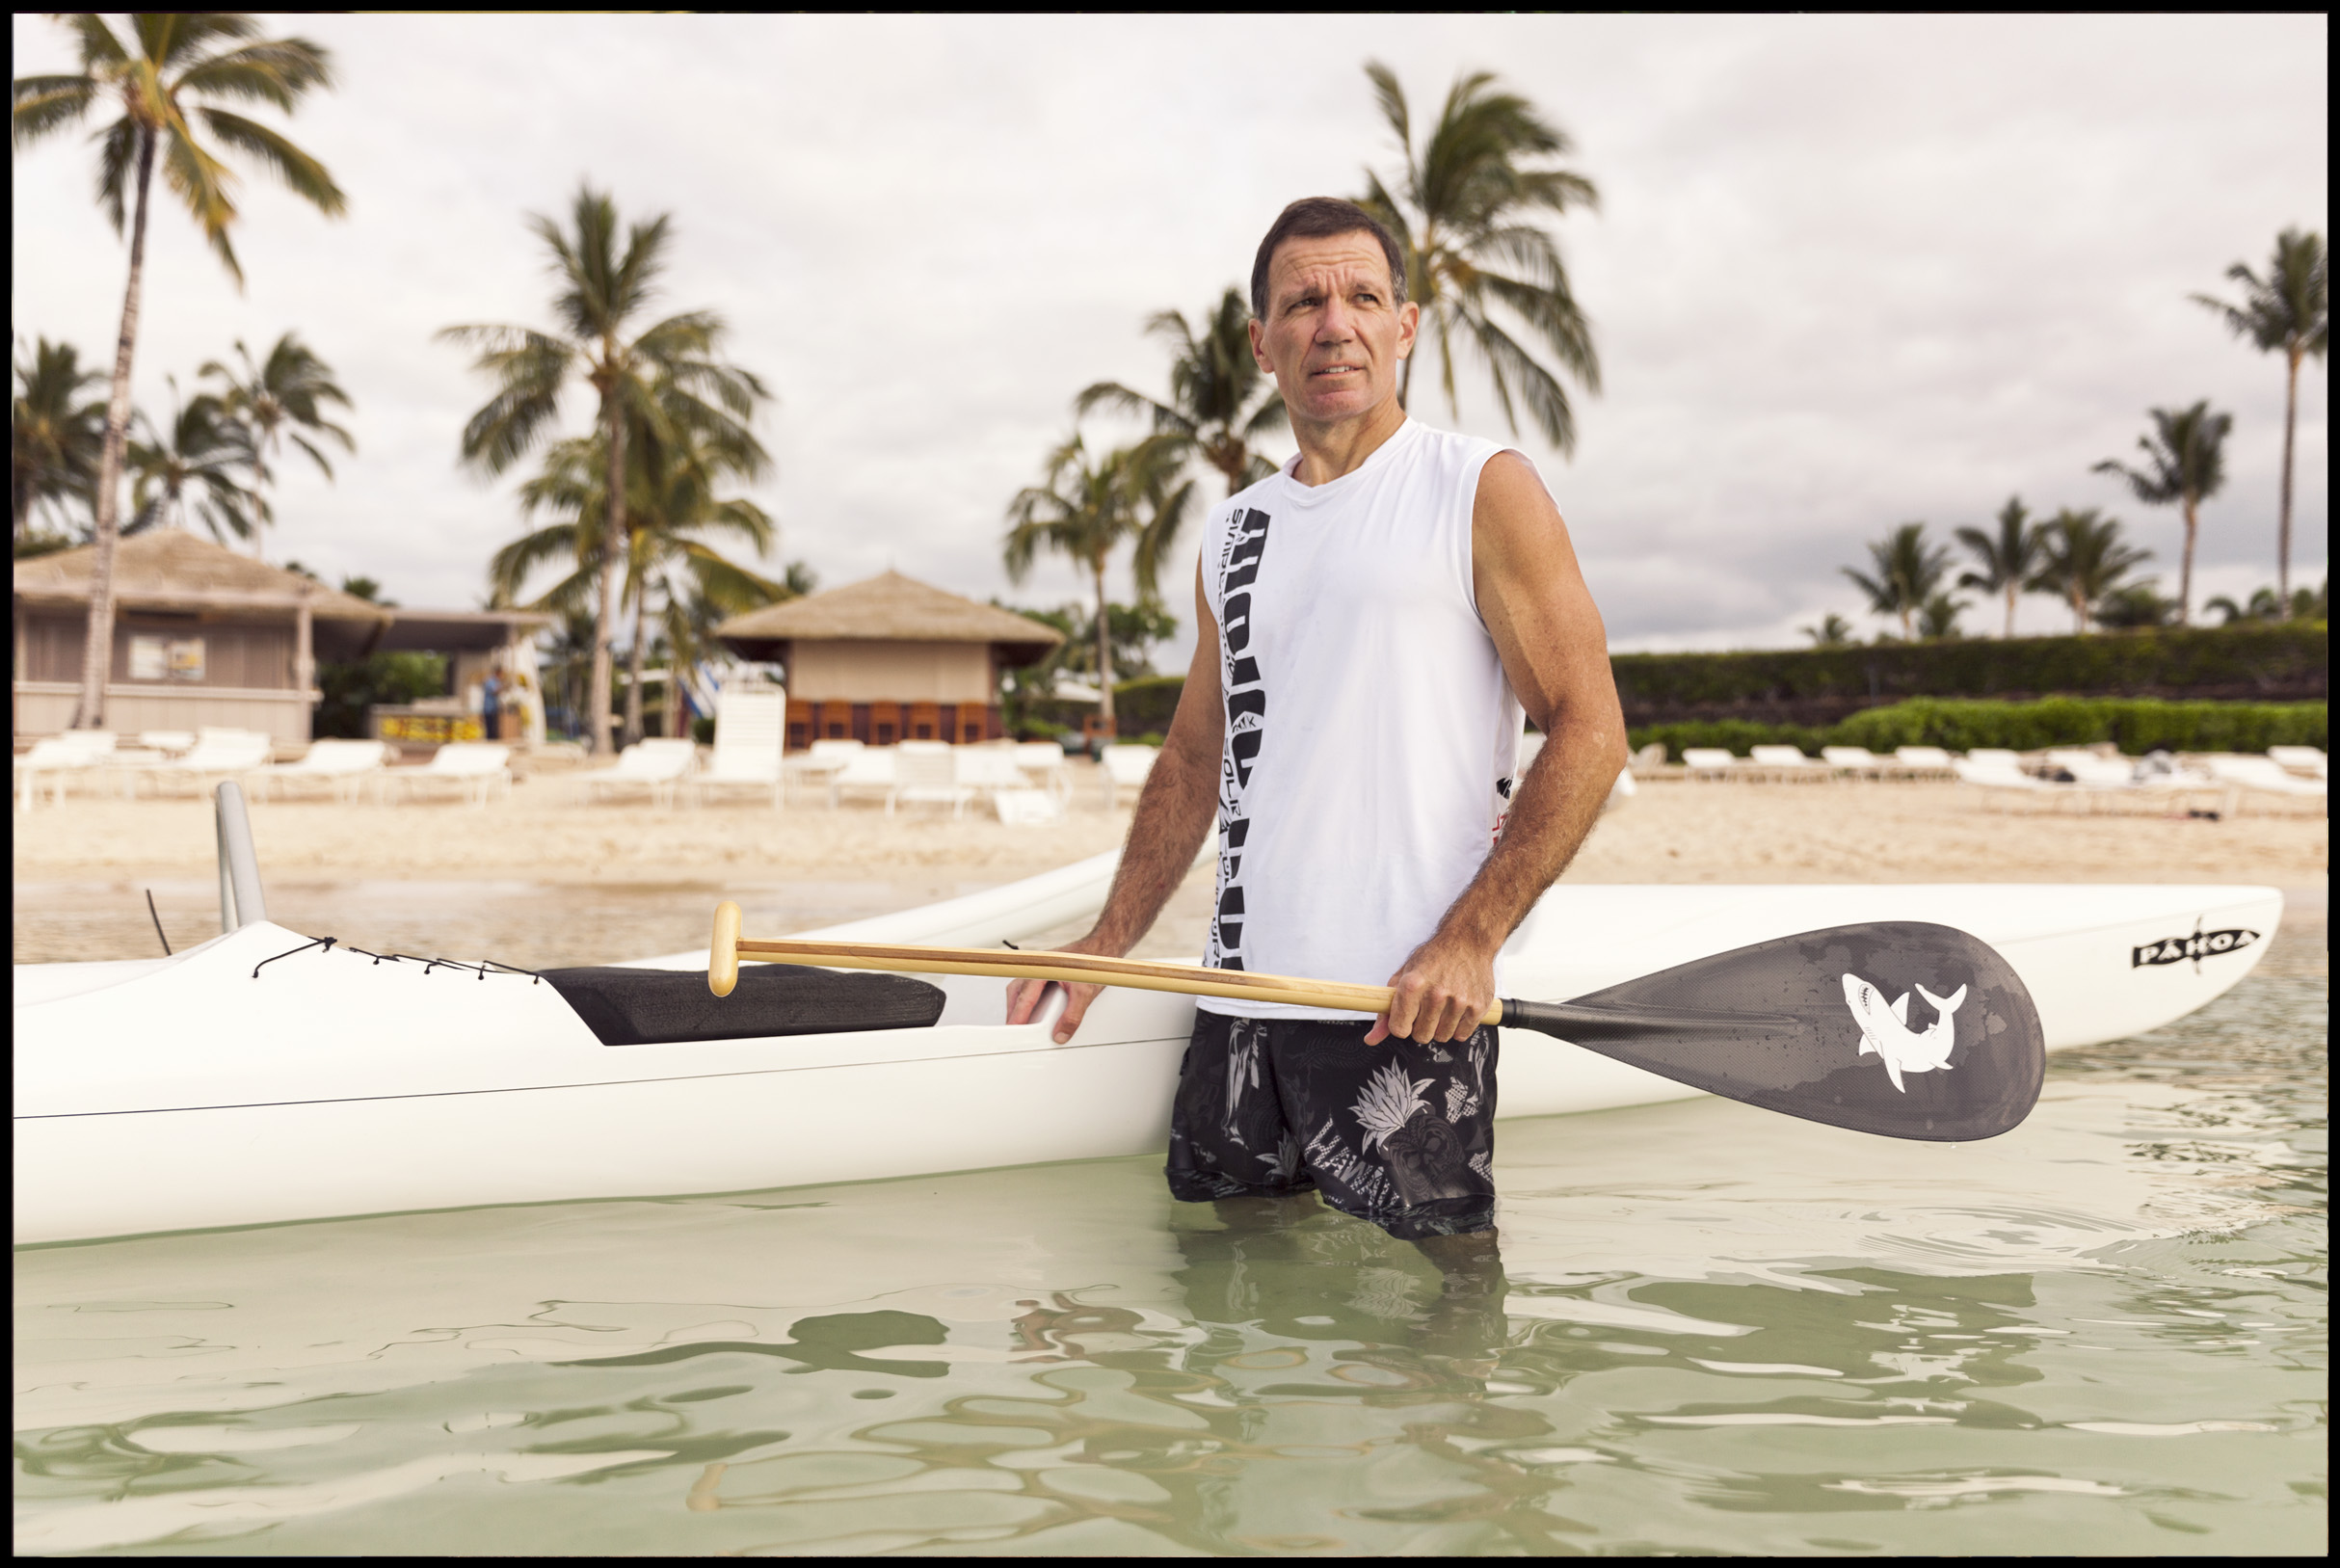 Fairmont Orchid general manager Chris Luedi finishes his one man canoe workout in the resort's lagoon.  Image for The Wall Street Journal.